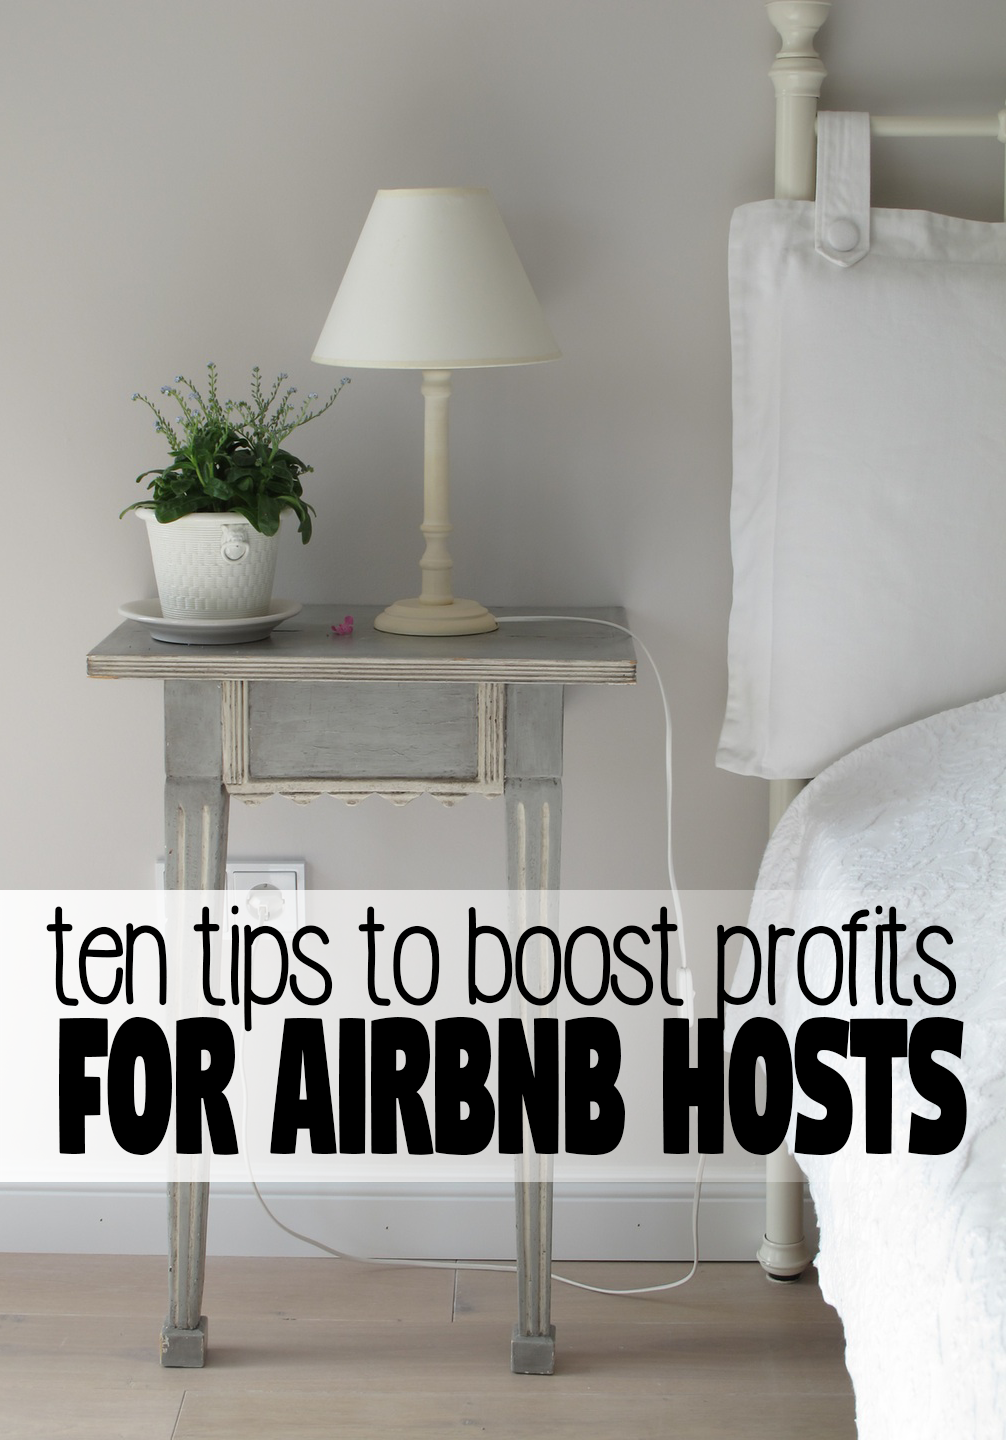 Ideas on how to maximize profits and guest reviews as an Airbnb Host